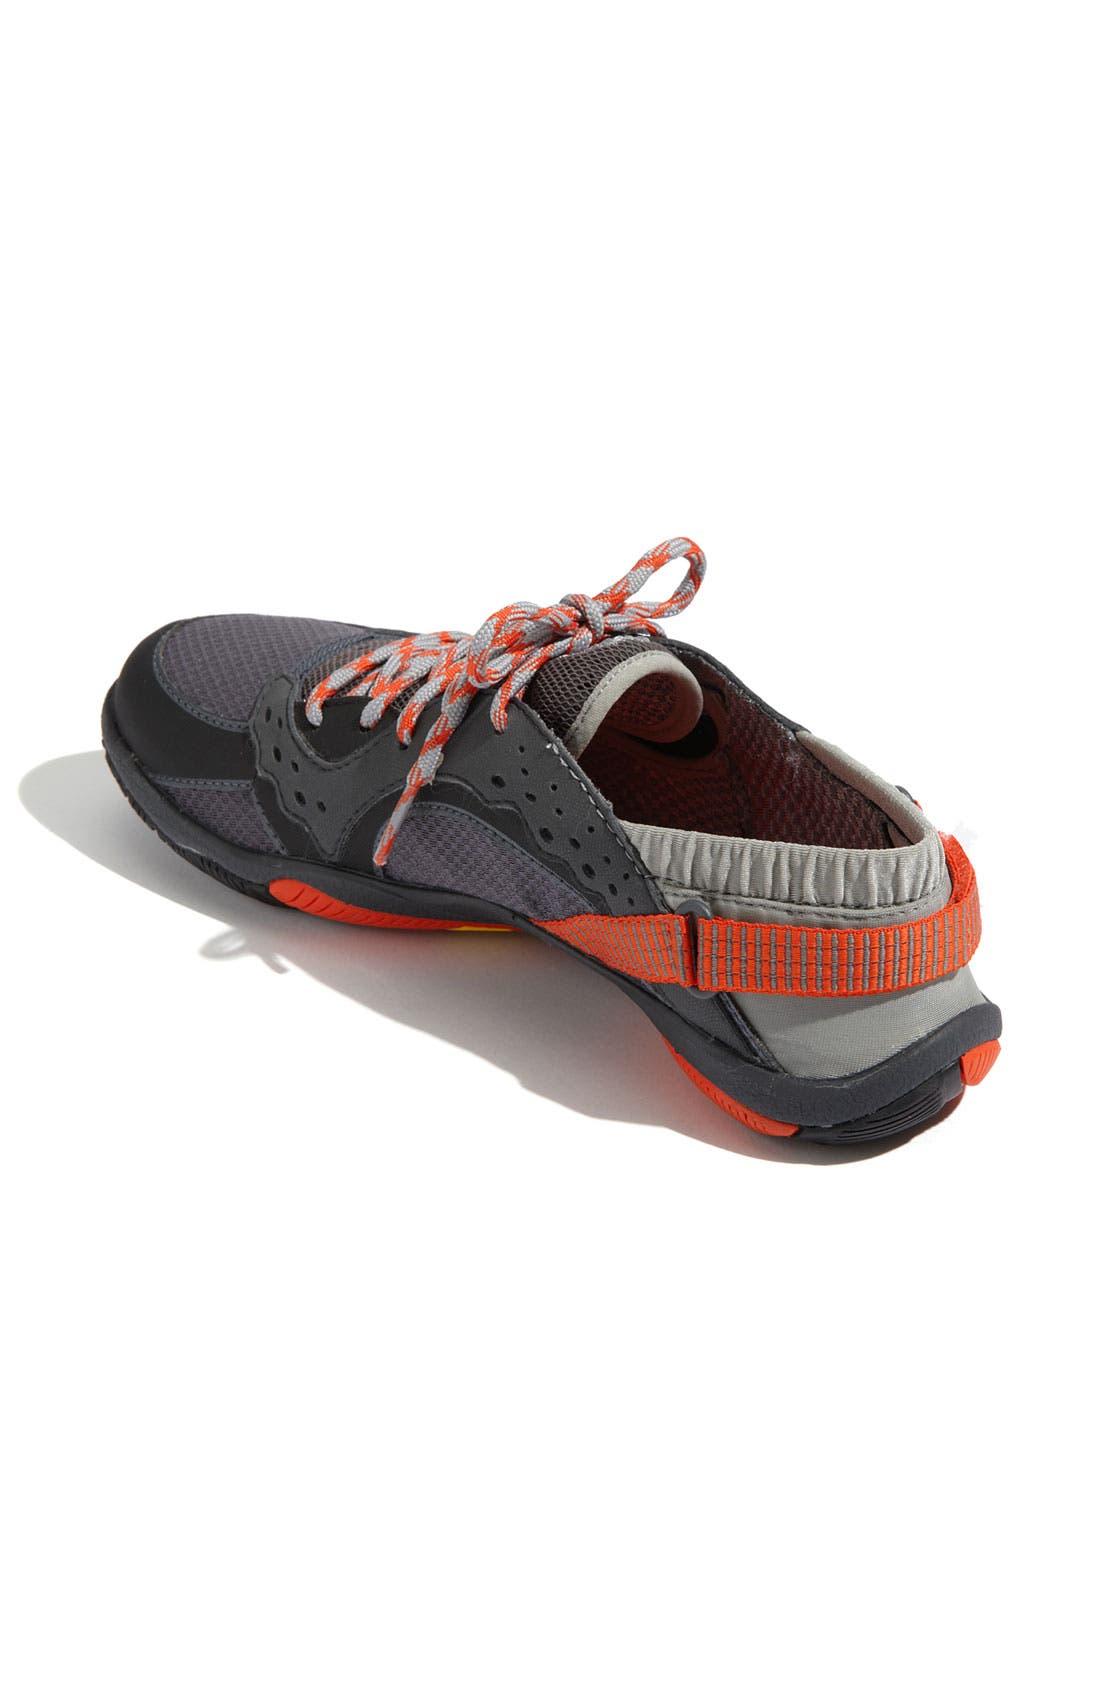 Alternate Image 2  - Merrell 'Swift Glove' Walking Shoe (Women)